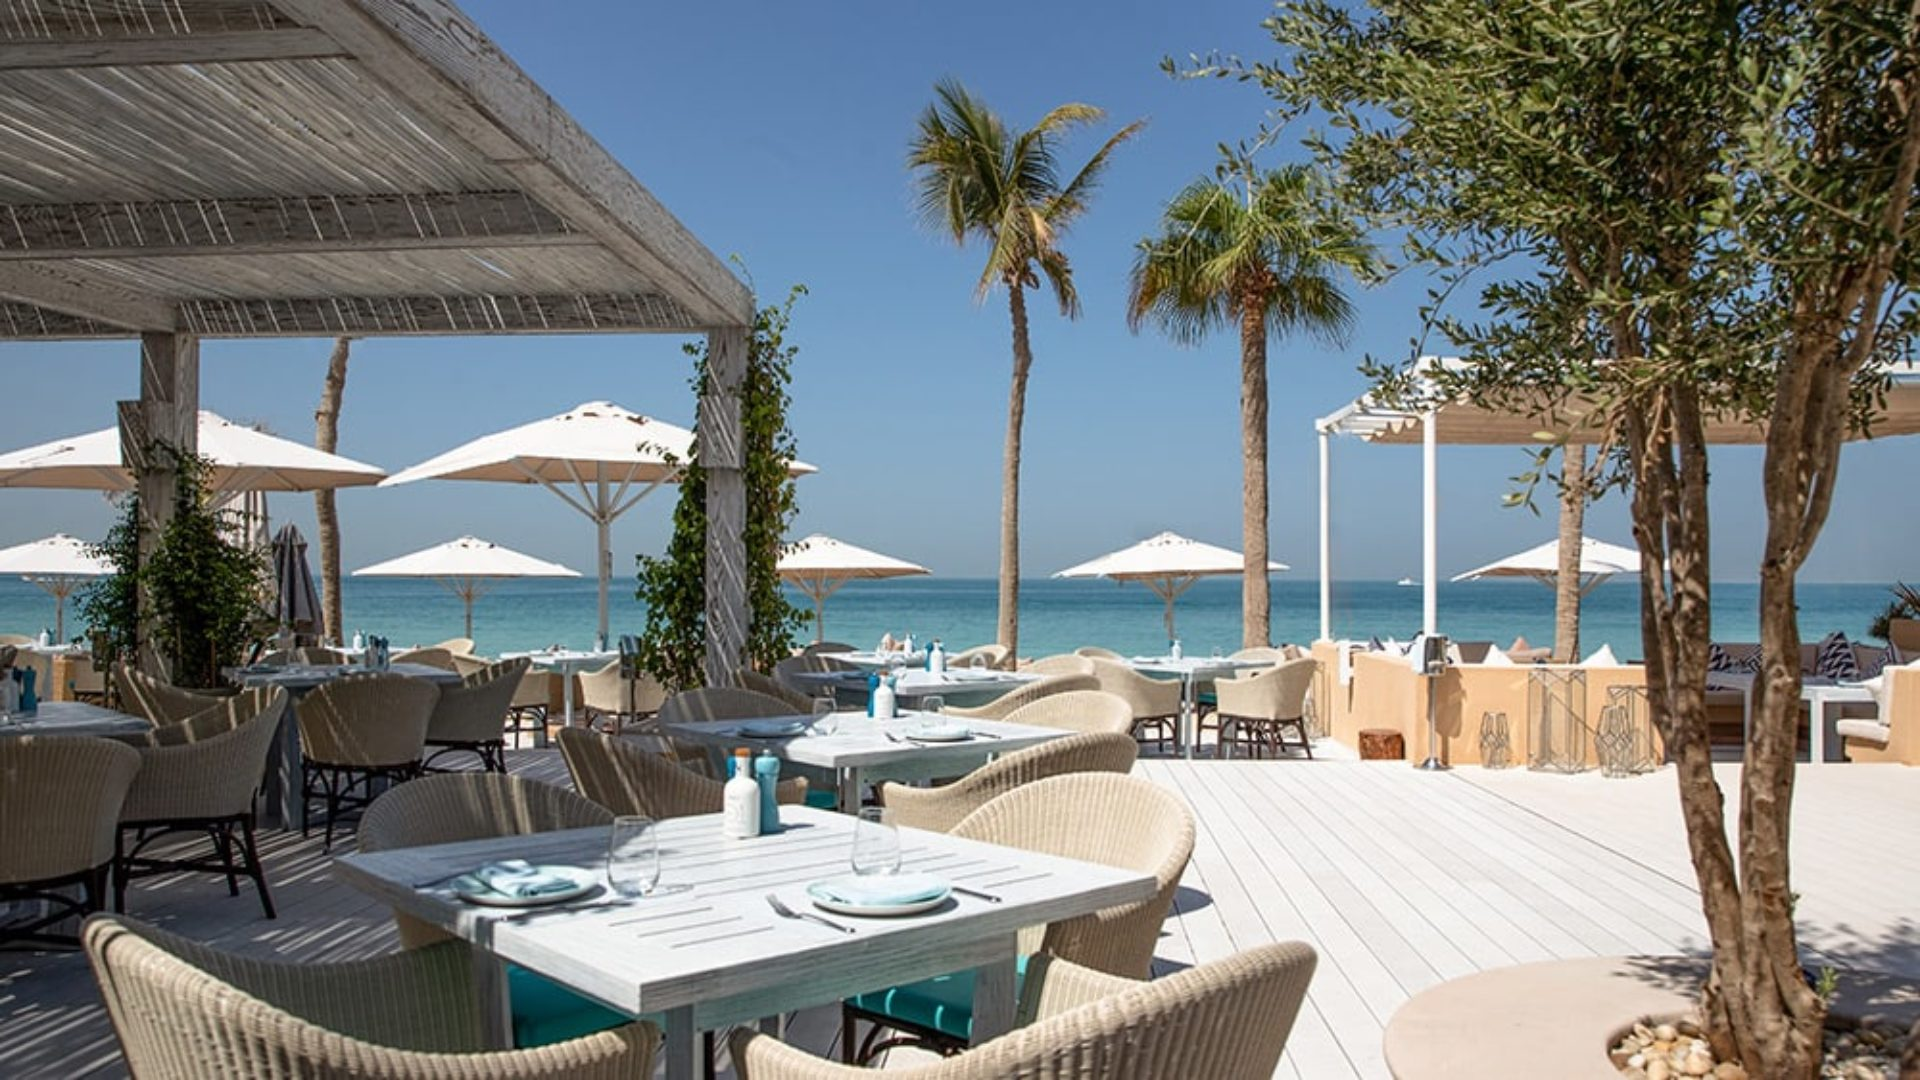 Outdoor terrace at Shimmers Restaurant at Jumeirah Mina A'Salam